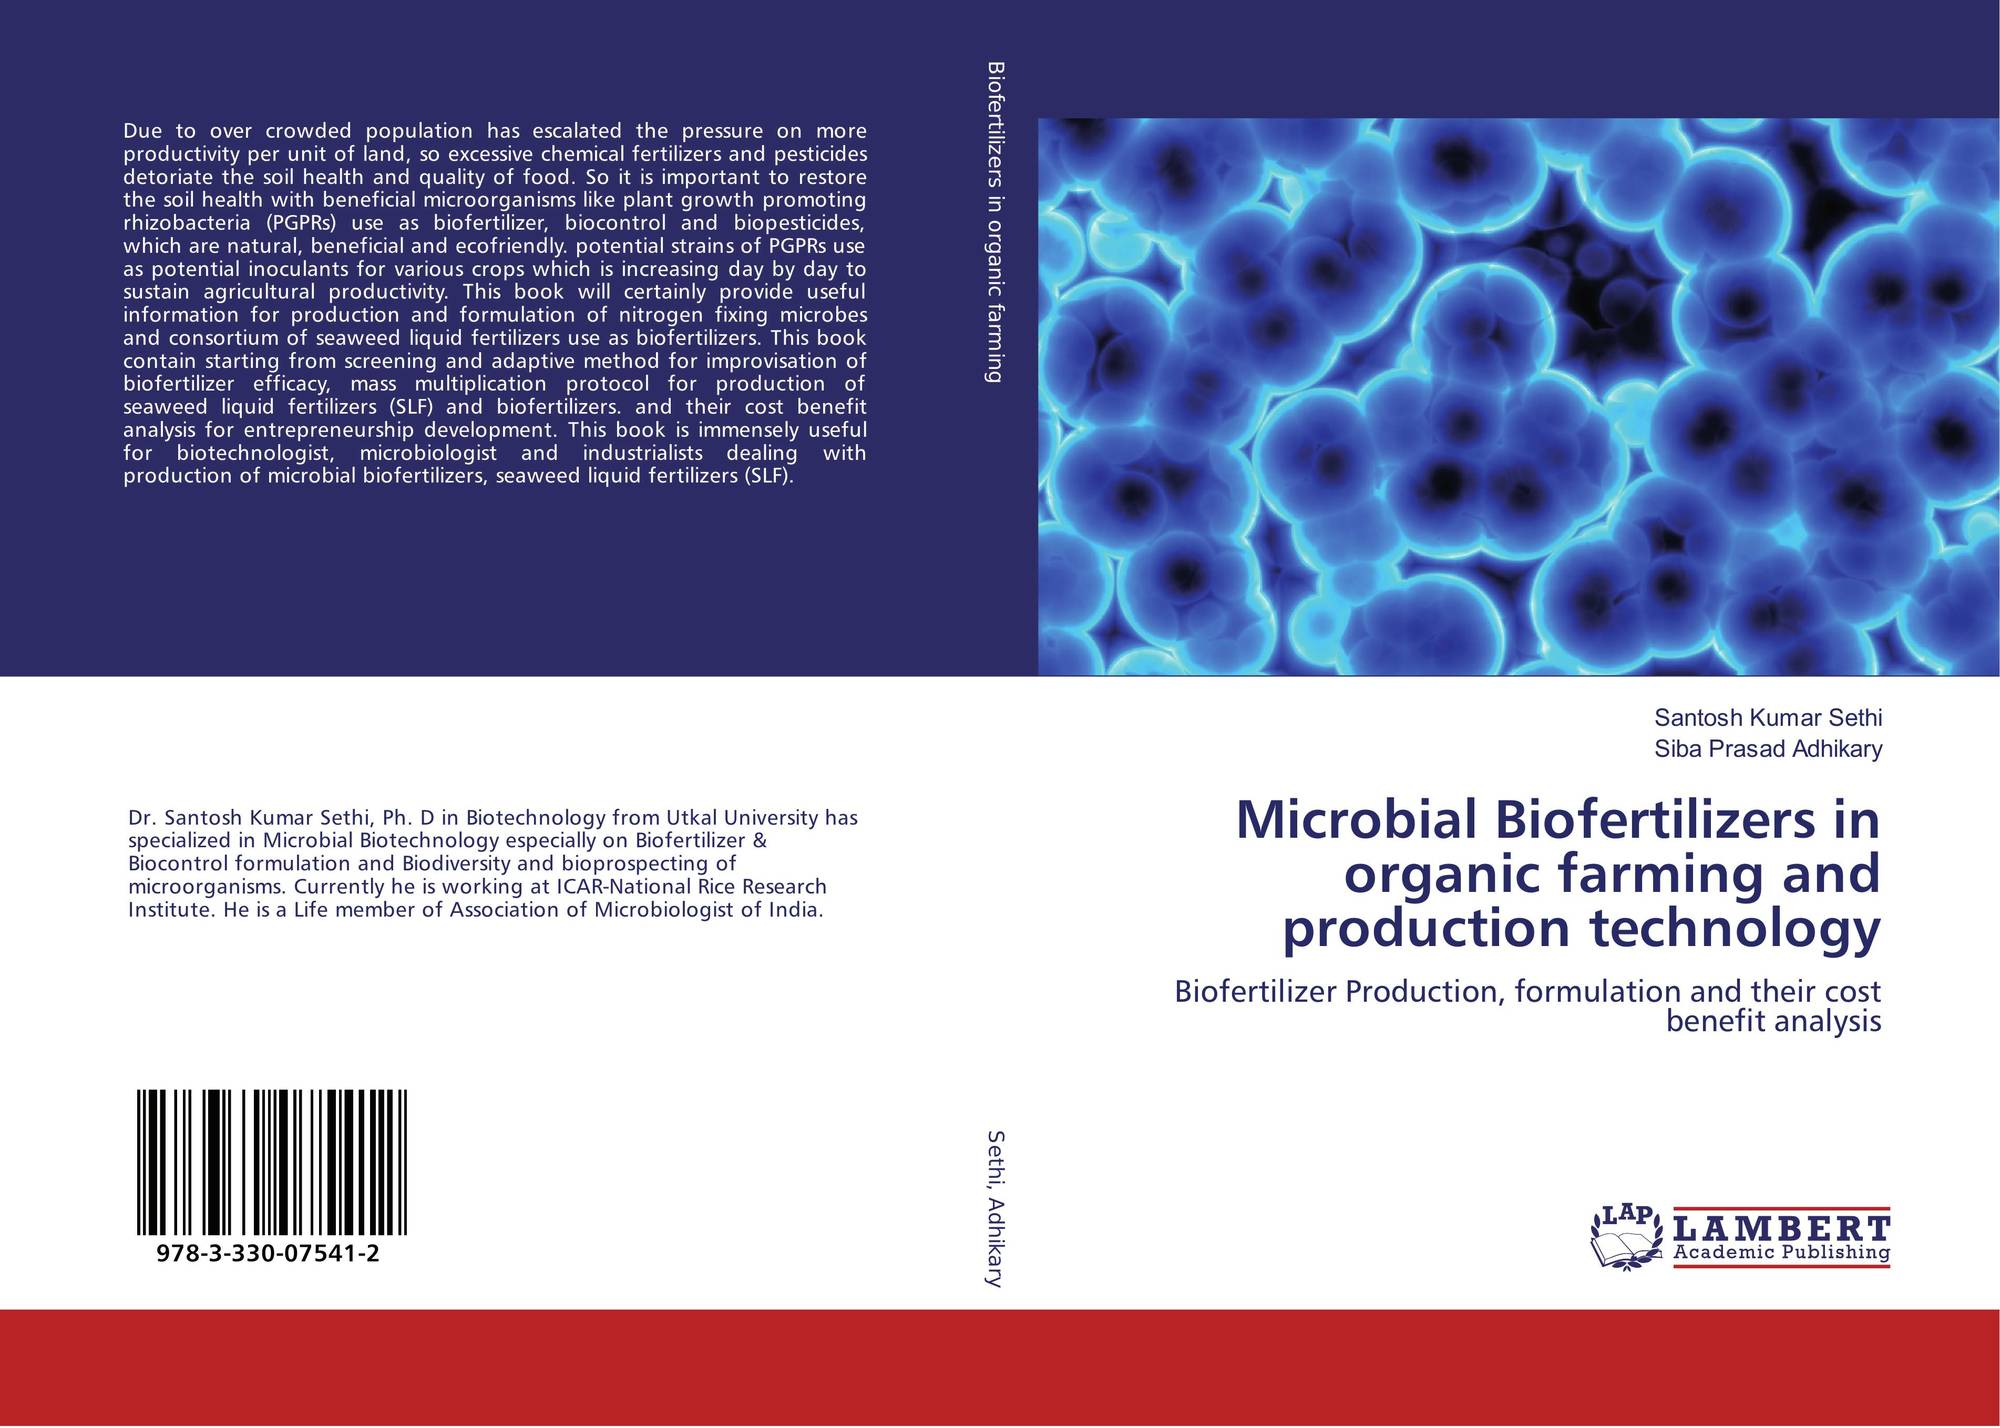 analysis of inorganic fertilizers biology essay Organic fertilizers are consisted of organic matter and living organisms like other plants and animals inorganic fertilizer are composed manufactured when trying to understand how inorganic fertilizer works, it is important to discuss about the composition of soil and the kind of chemistry reactions.